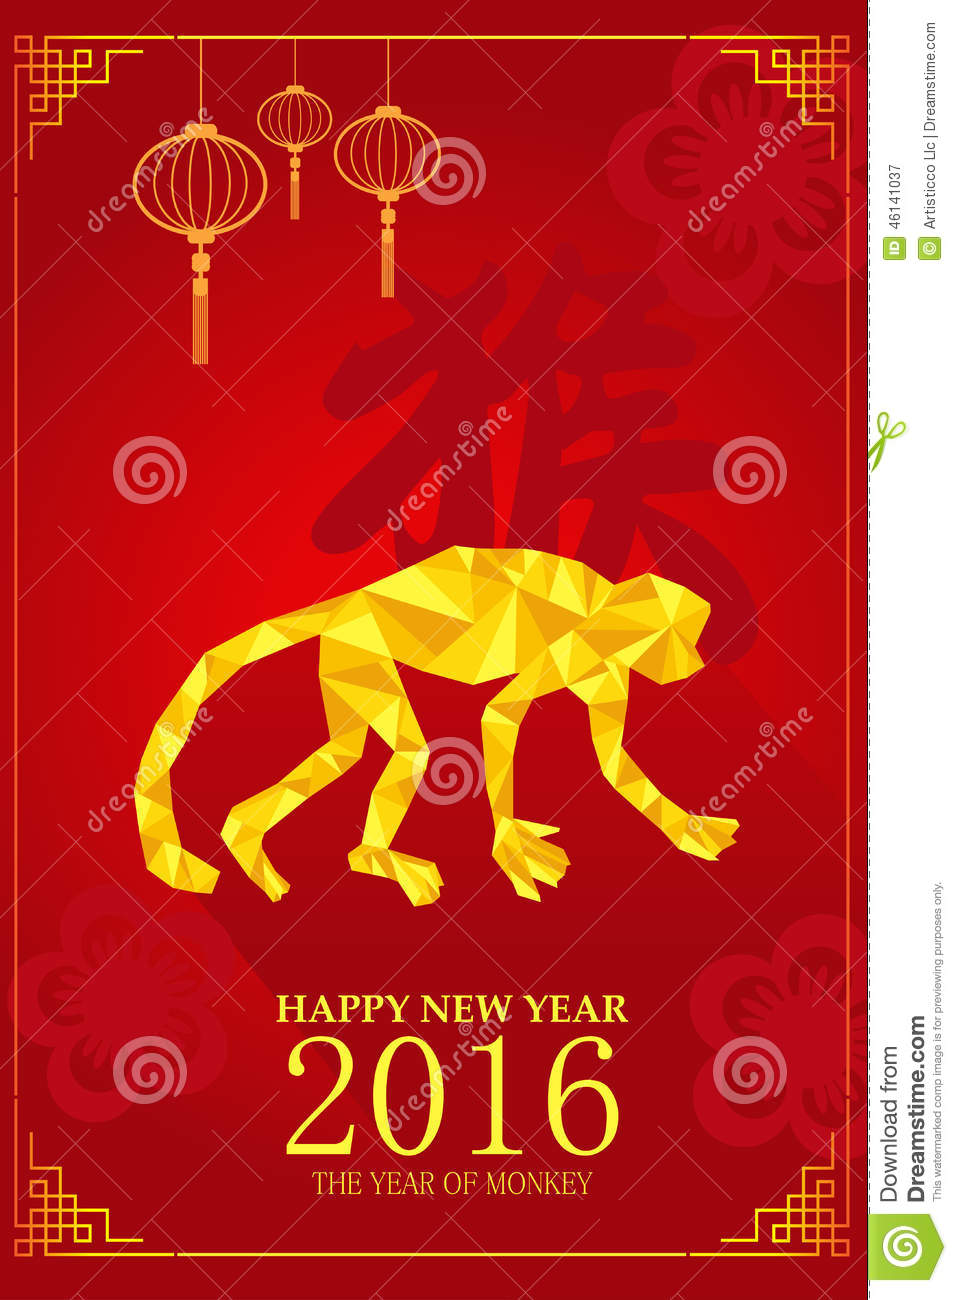 Chinese New Year Design For Year Of Monkey Stock Vector - Image ...